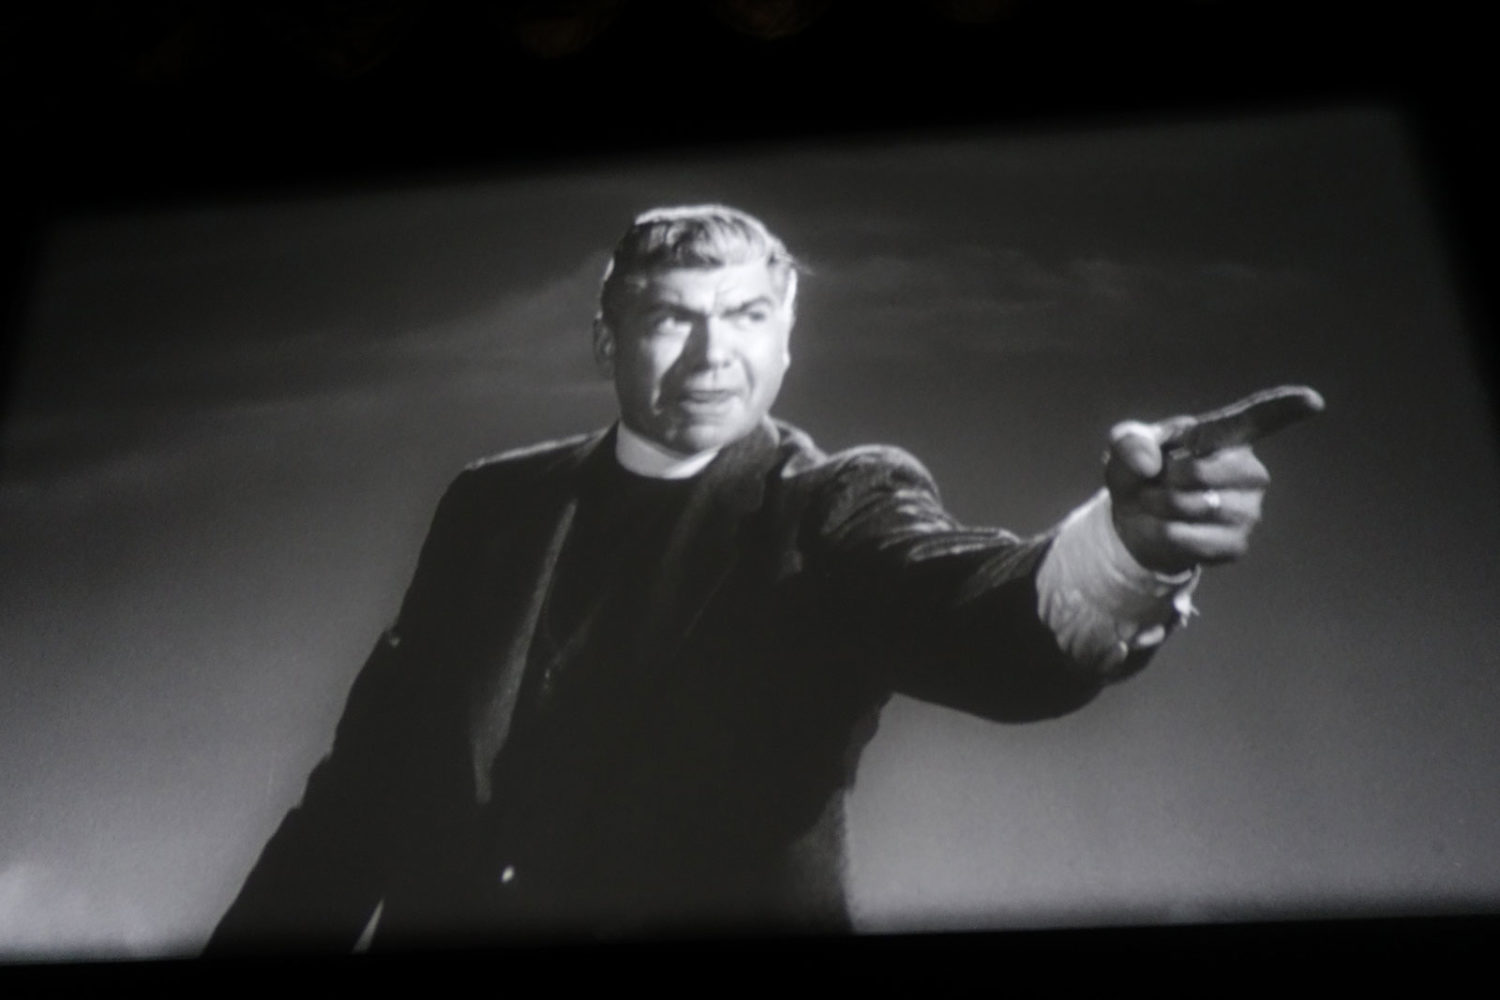 Claude Akins as Christian Fundamentalist preacher in Inherit The Wind